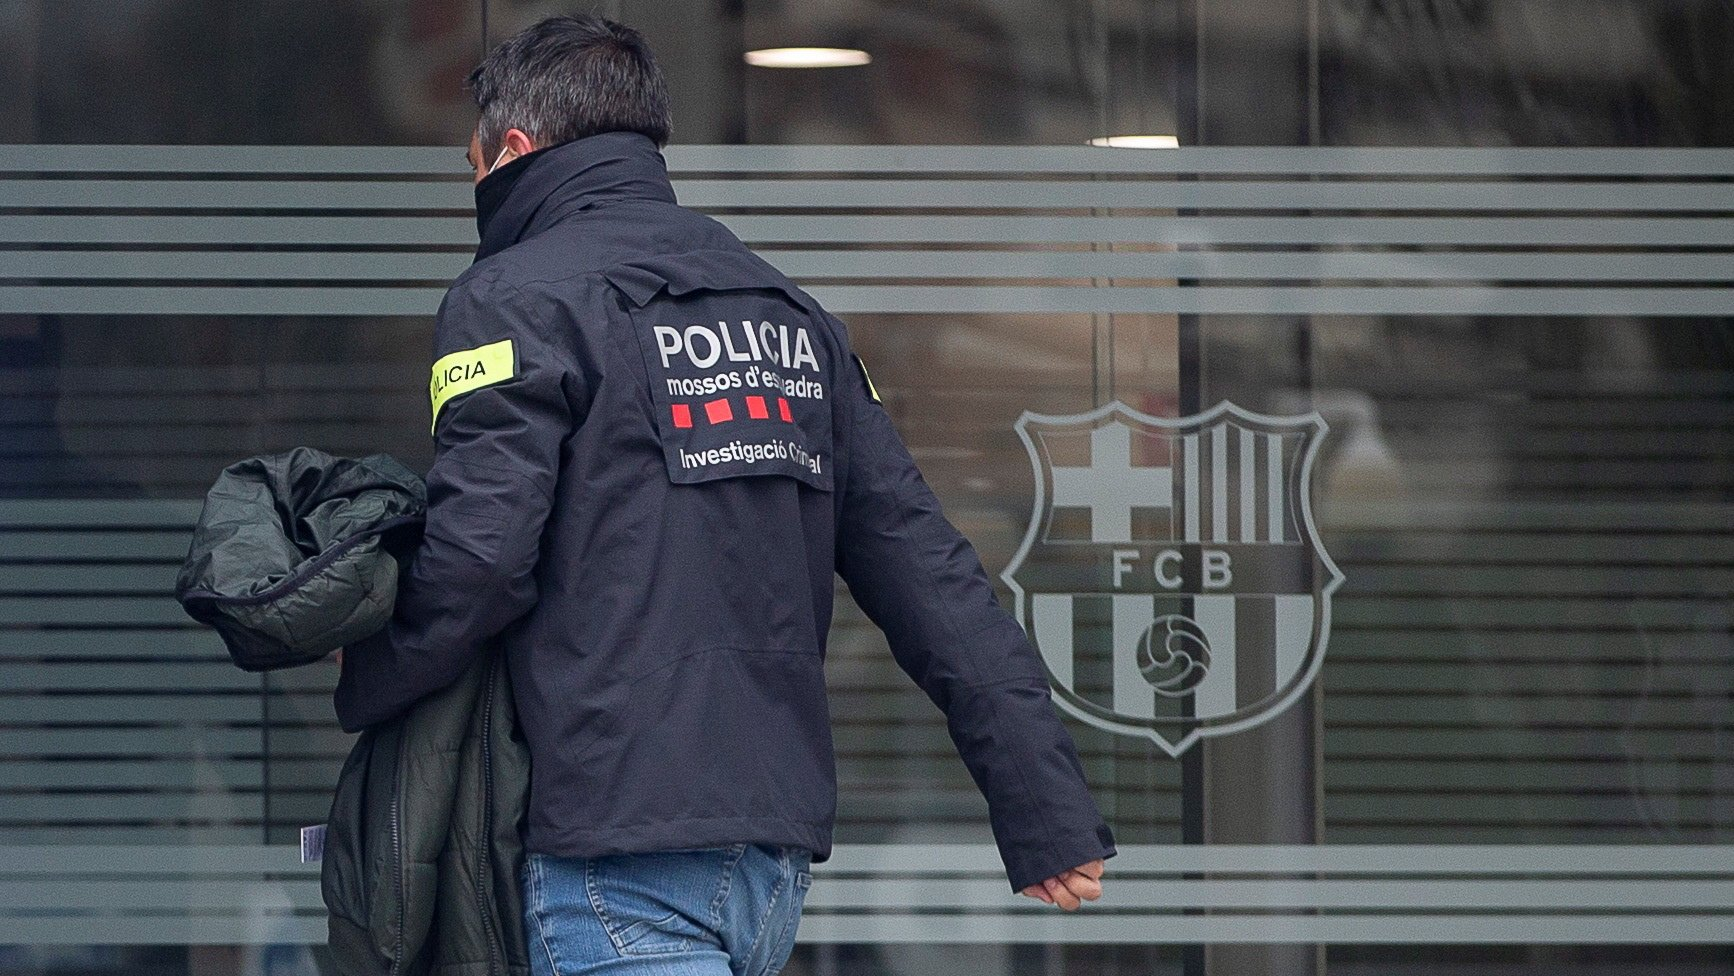 epa09045126 A members of Mossos d'Esquadra regional police's Economic Offences Unit is seen at the Spanish soccer club FC Barcelona's headquarters during a raid amid the investigation of the so-called 'BarcaGate' case, in Barcelona, Spain, 01 March 2021. Police investigates if a company, hired by the club, carried out a smear campaign against opposite players and groups to then club's board of directors. According to judicial sources FC Barcelona's former president Bartomeu, former director of the presidency area Jaume Masferrer and the current director general of the club, Ocar Grau has been arrested.  EPA/Quique Garcia